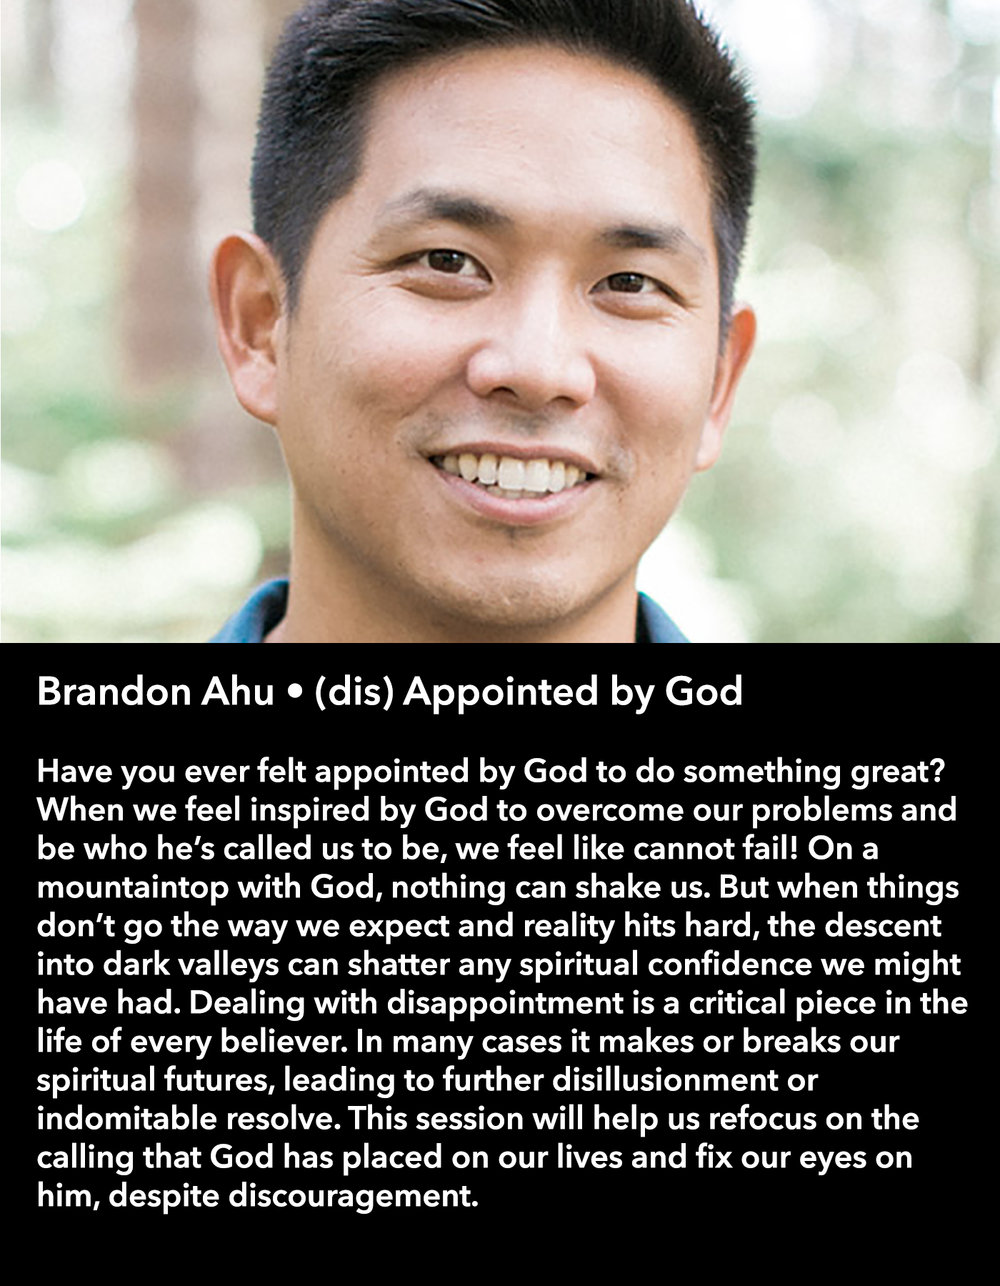 Brandon Ahu • (dis) Appointed by God • Saturday Morning, March 18 • 10:30 – 11:45 am